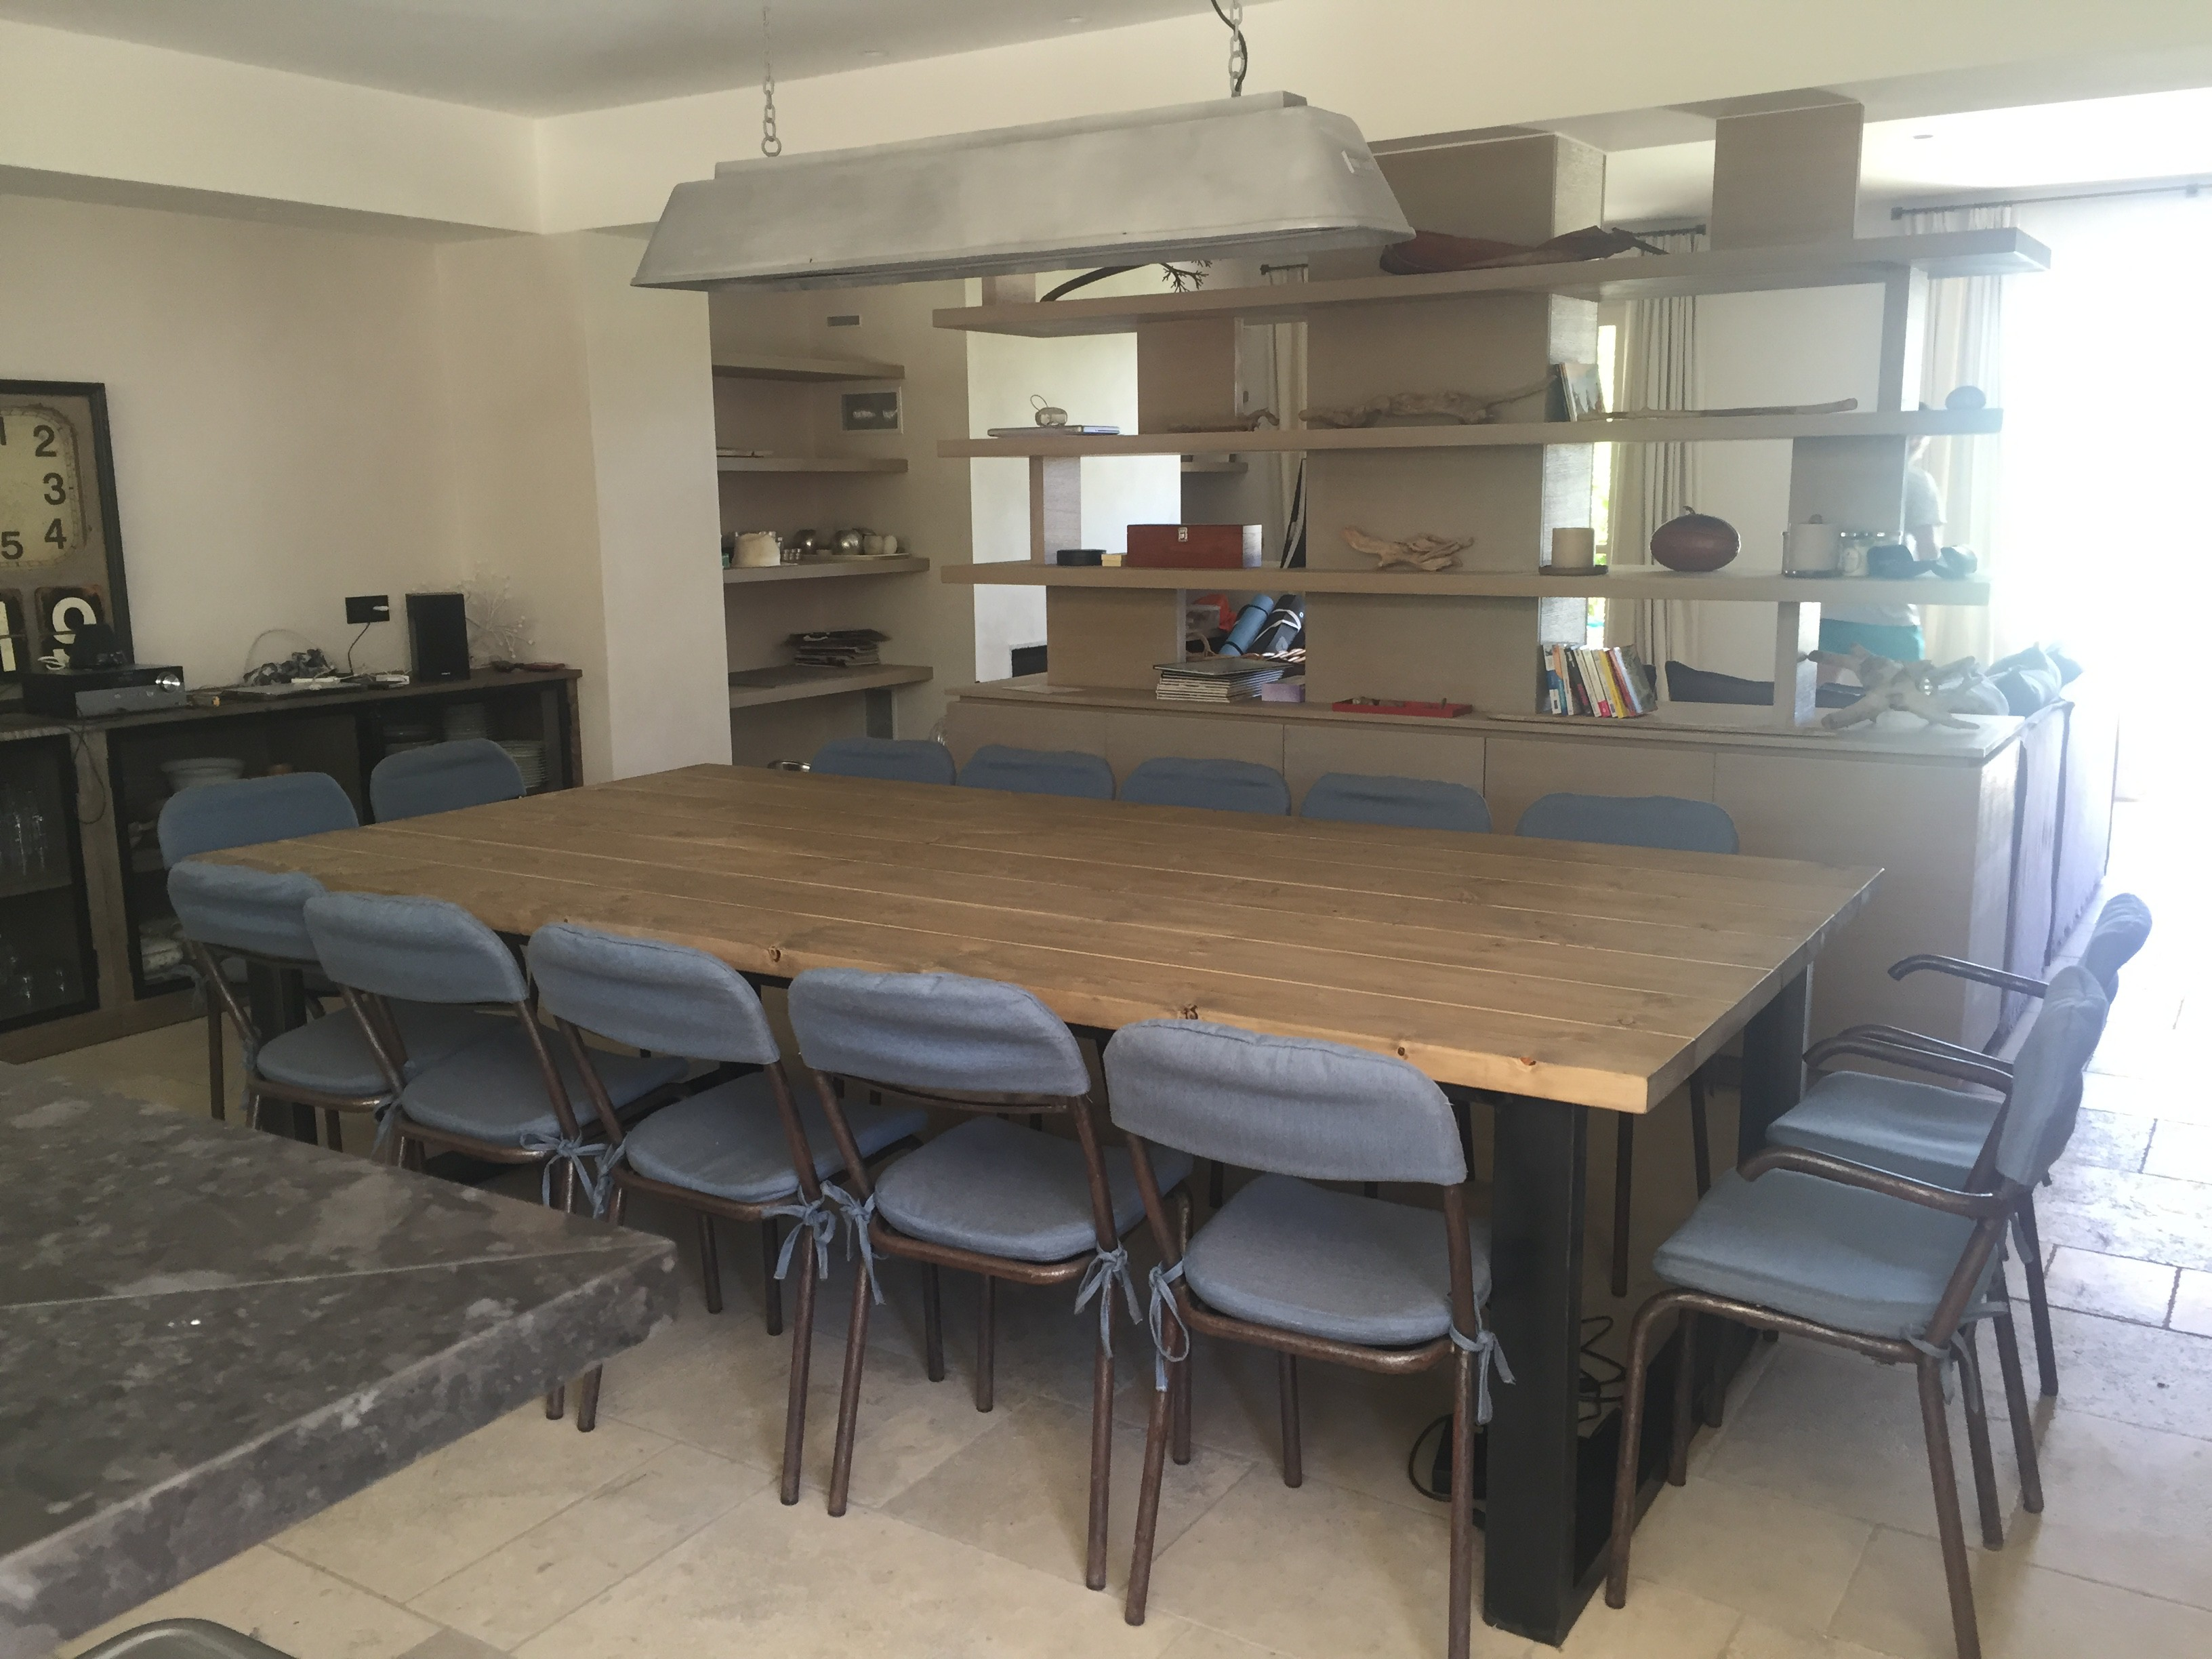 Table esprit industriel - Table salle a manger industrielle ...